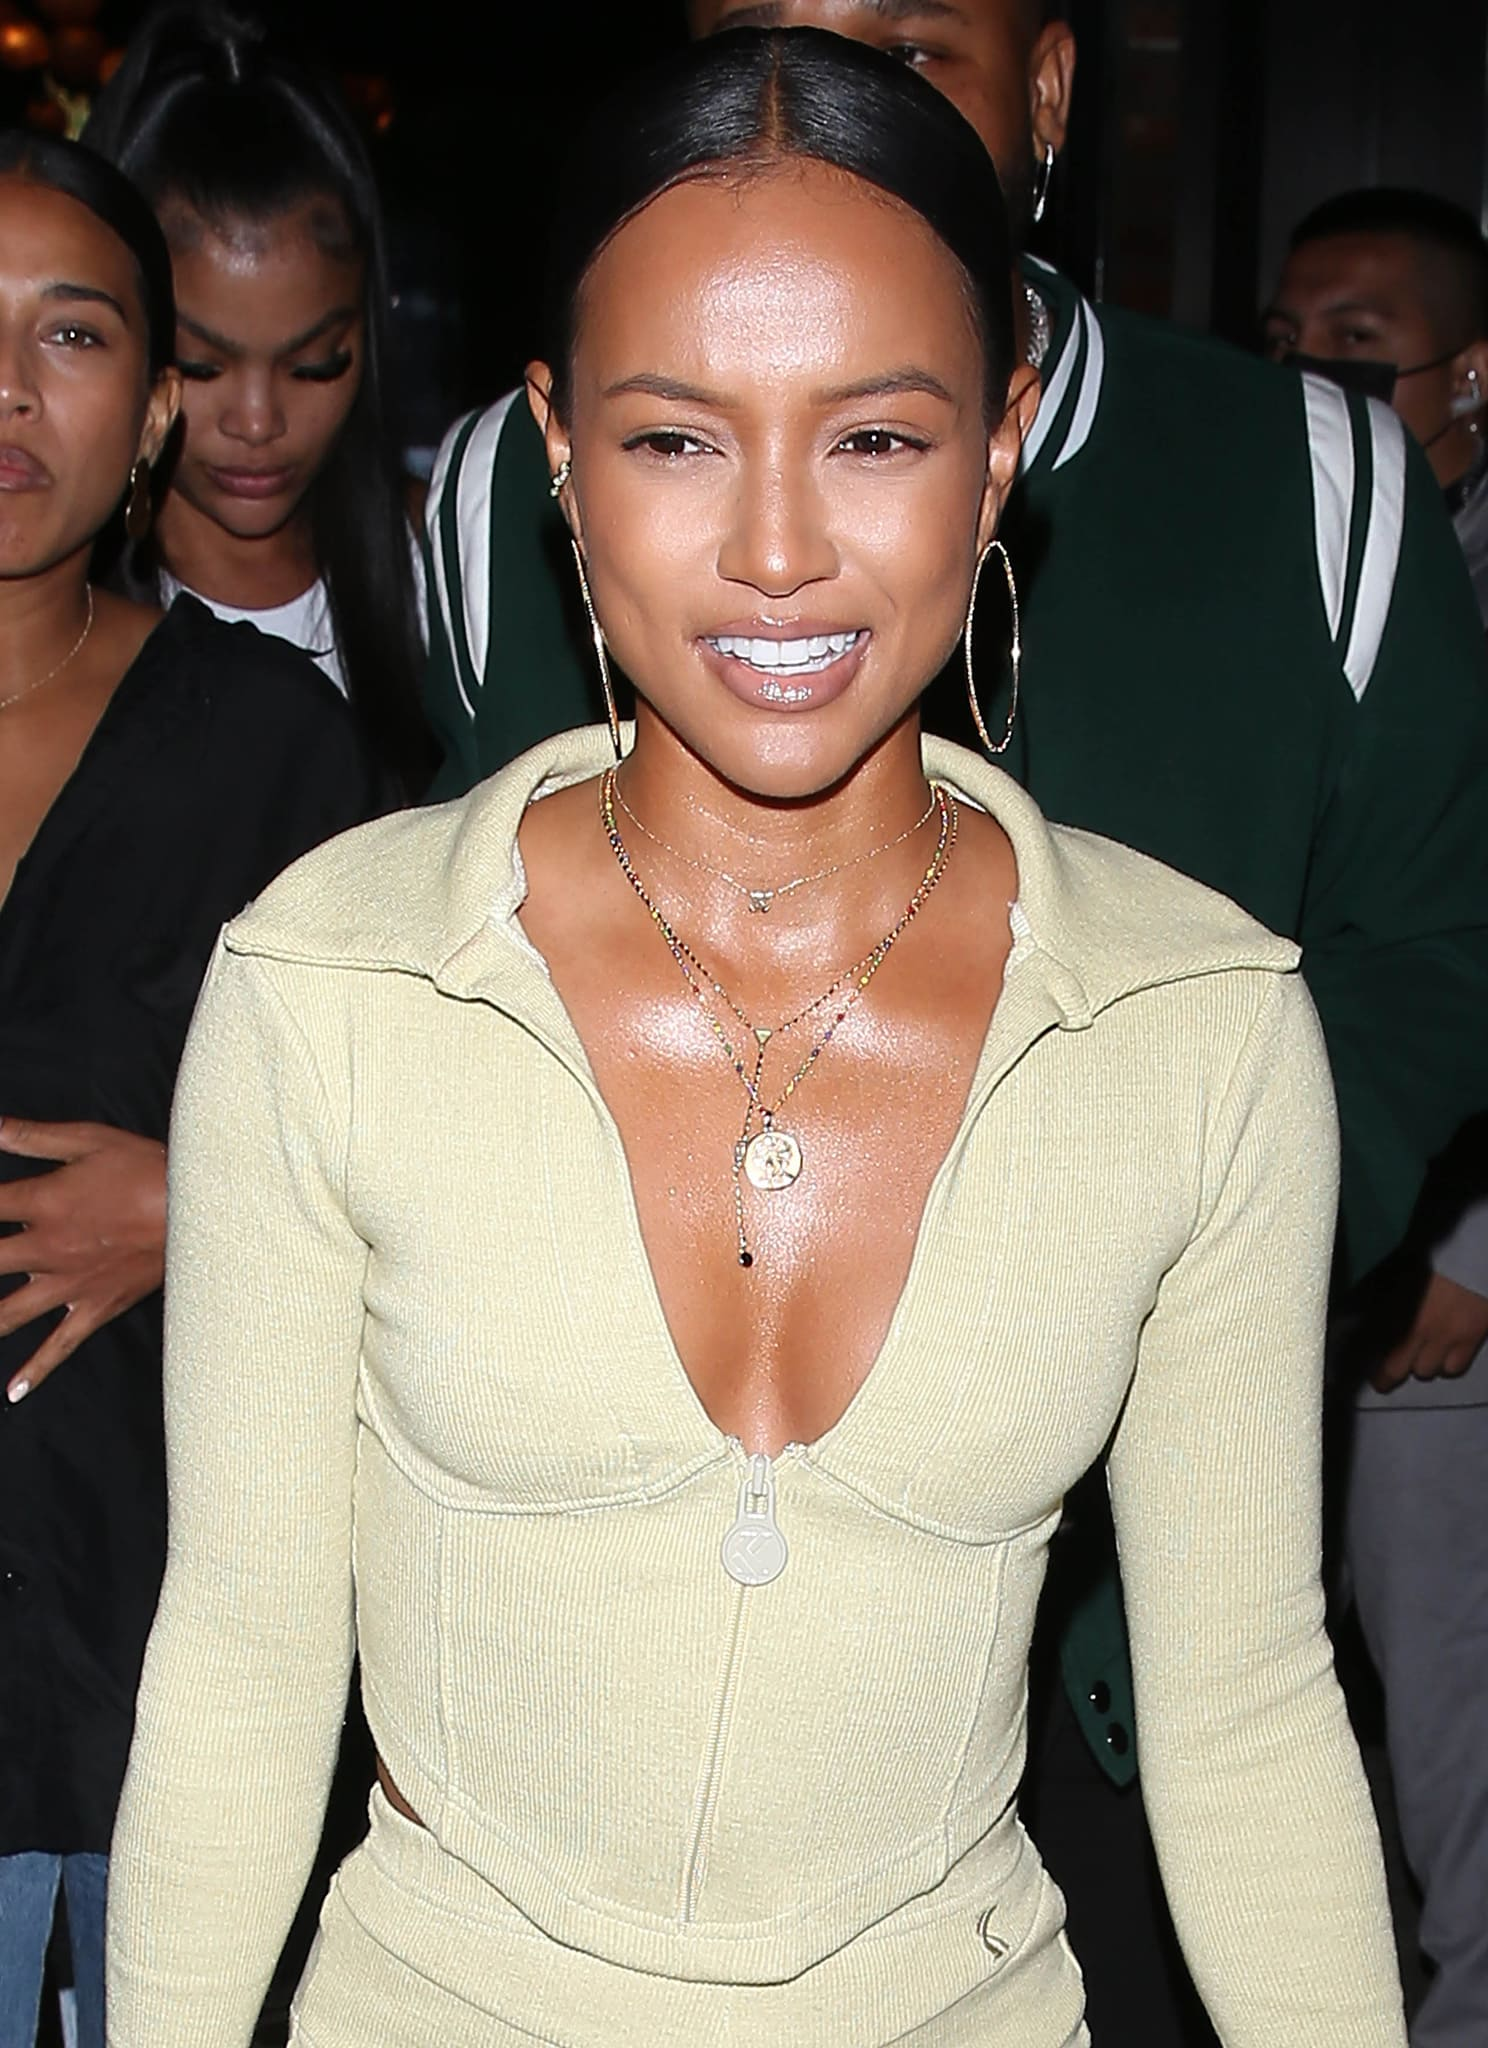 Karrueche Tran draws attention to her cleavage with layered necklaces